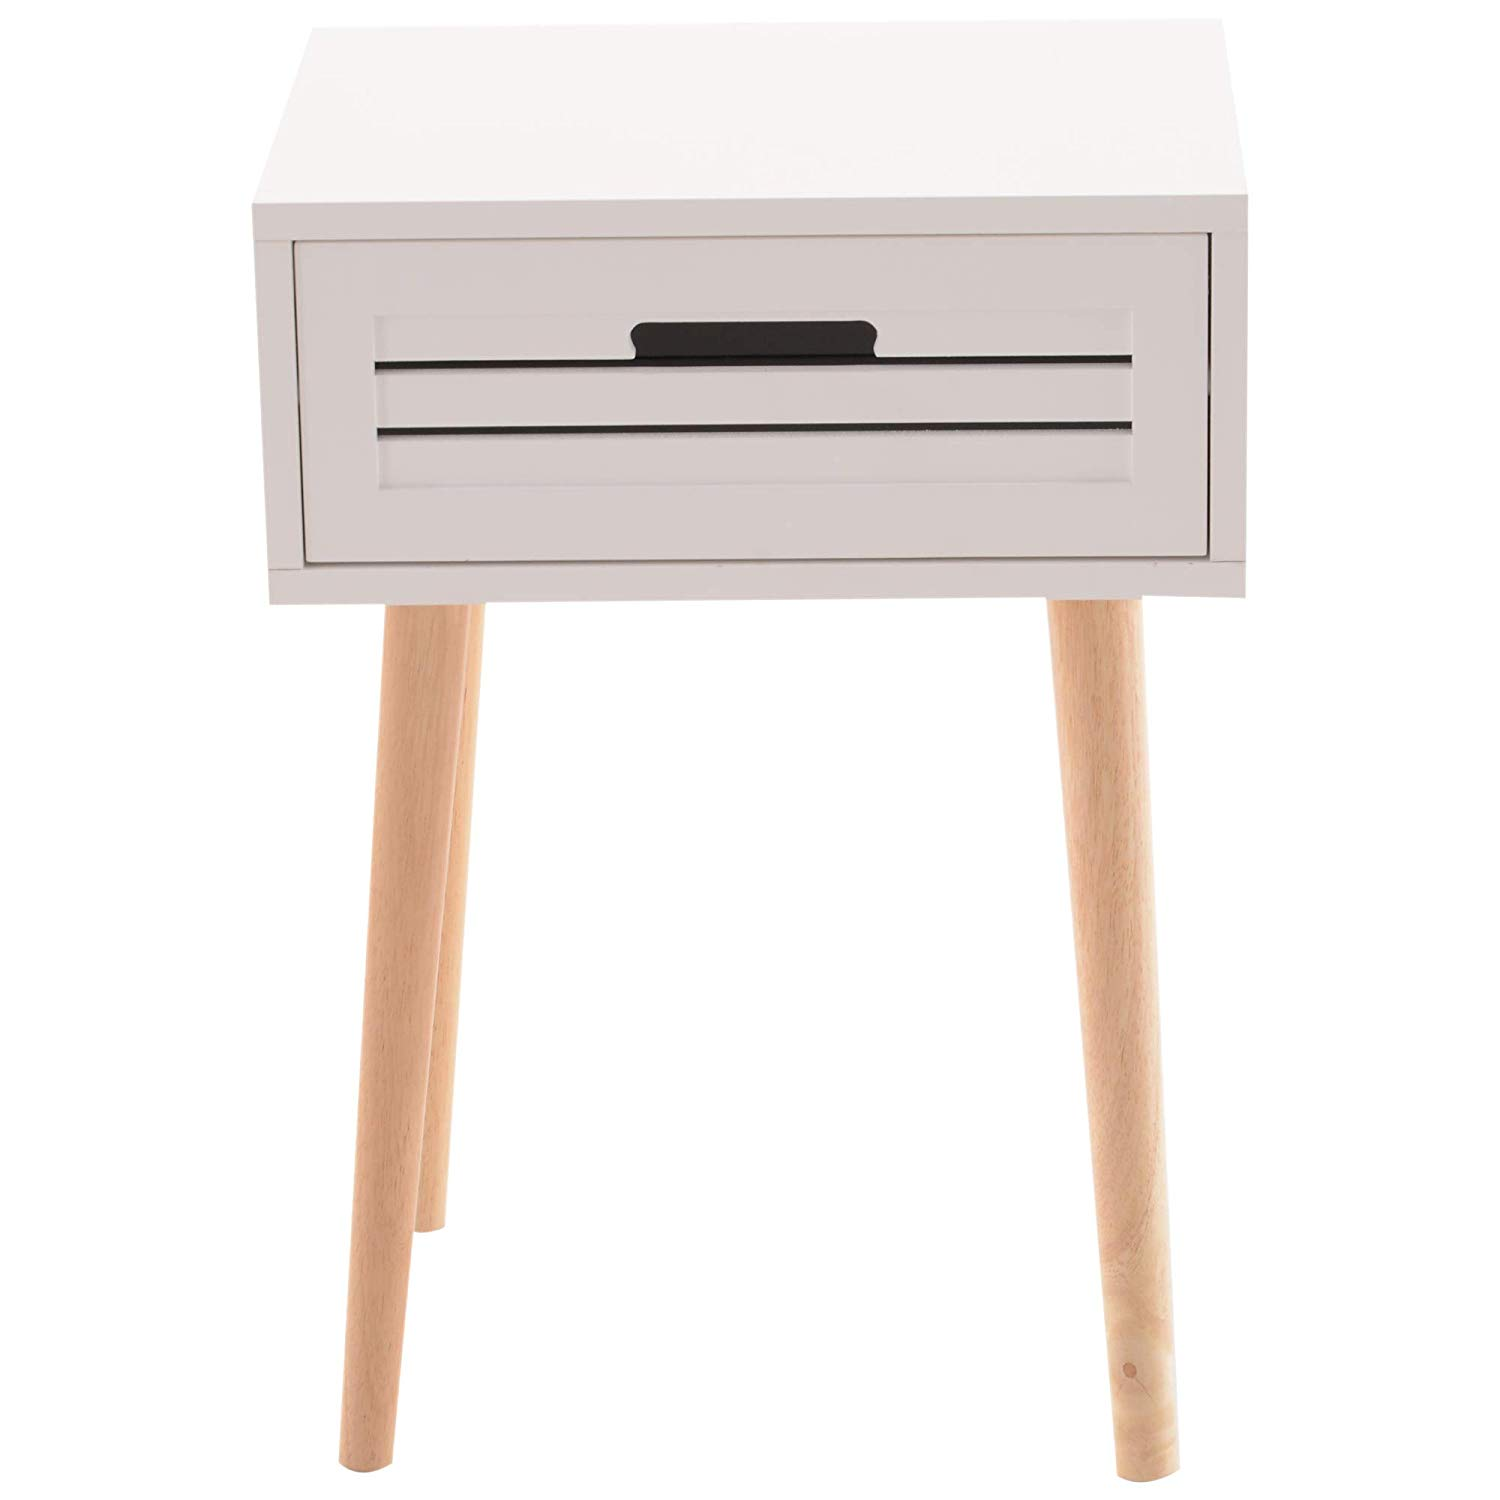 homcom wood mid century modern end table night stand room essentials stacking accent with storage drawer white kitchen dining formal chairs small folding patio wooden coffee plans